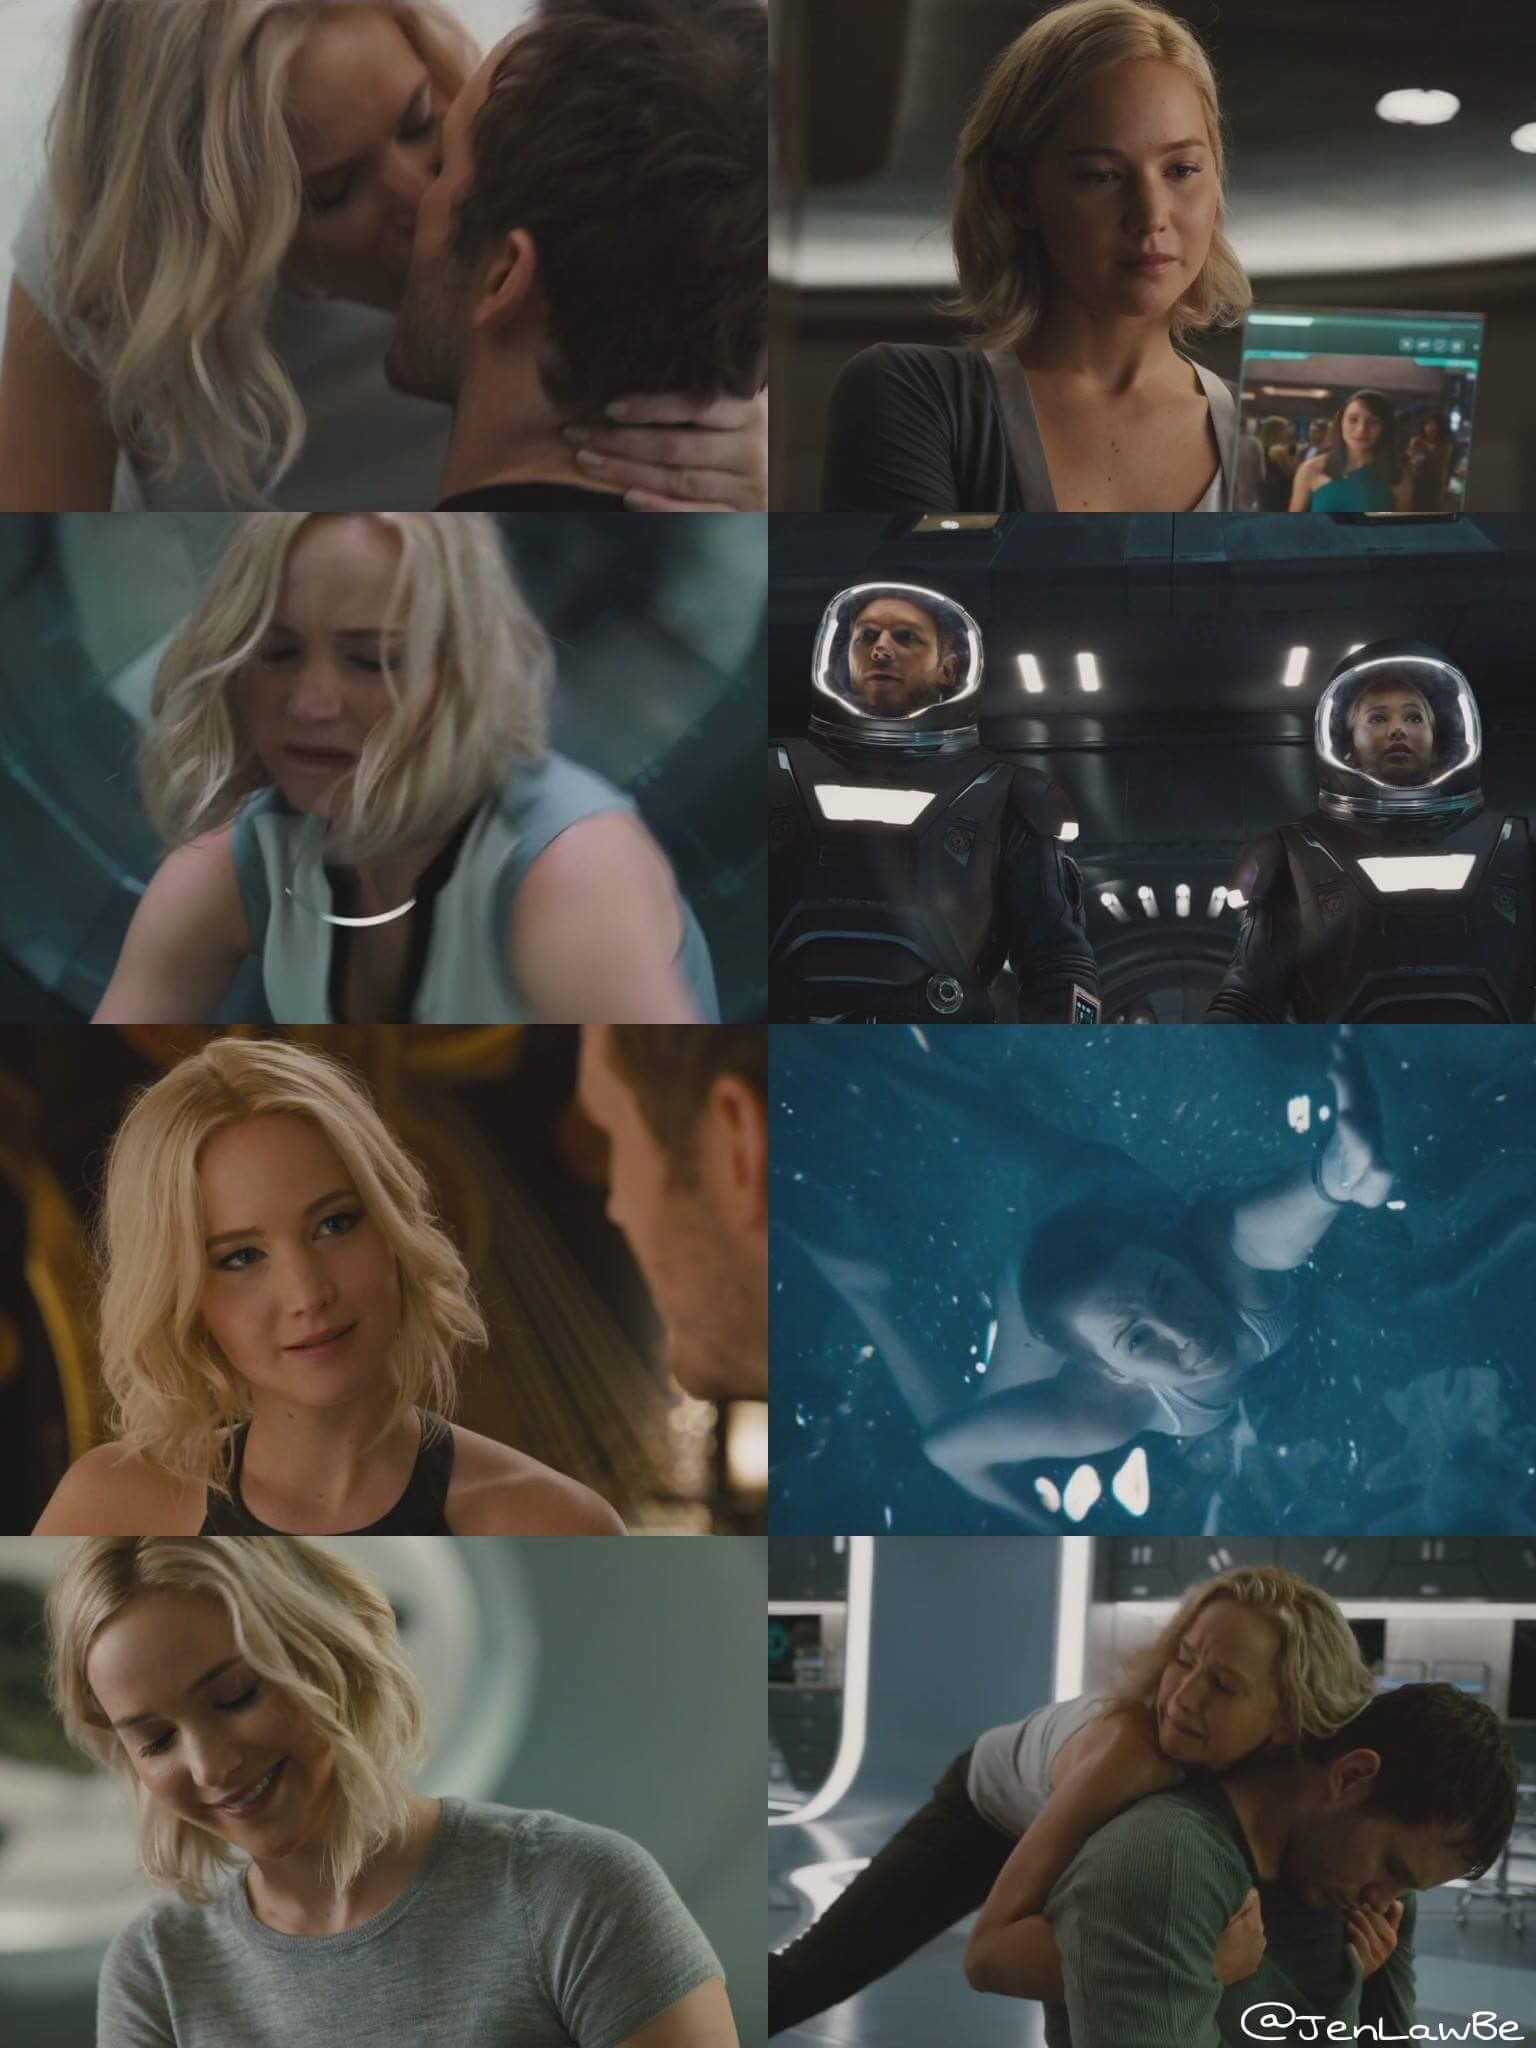 Jennifer Lawrence as Aurora Dunn in Passengers.